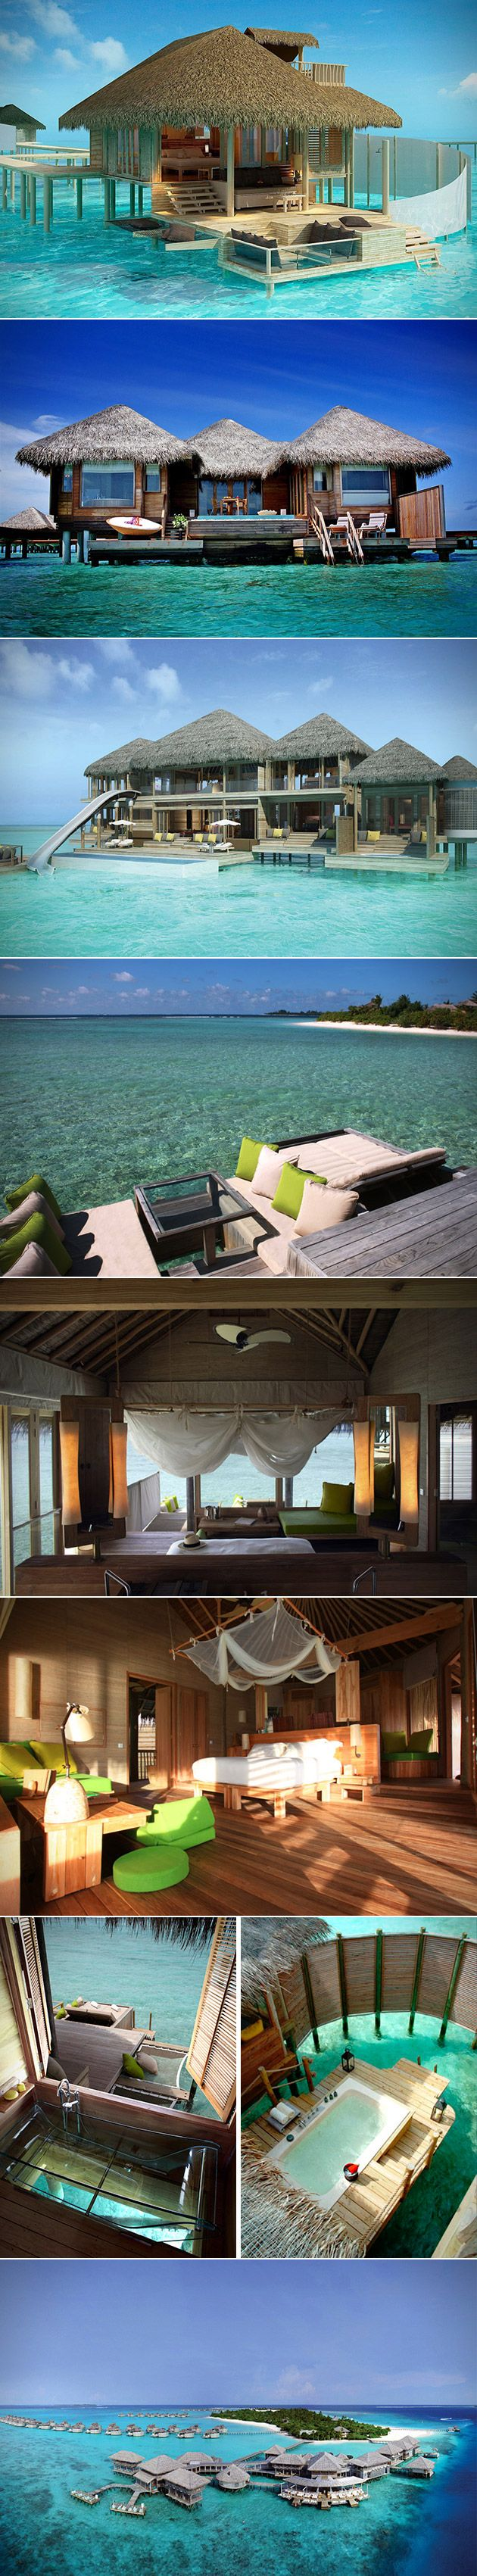 Sure there are several resorts to choose from in Maldives, but there's only one resort in the Laamu Atoll. Nestled deep within the Indian Ocean is the stunning Six Senses Laamu Resort. When you close your eyes and picture paradise, Six Senses is exactly what you're imagining. This resort includes several different overwater villas, all of which provide panoramic views of the turquoise waters and white sandy beaches surrounding each of the bungalows.